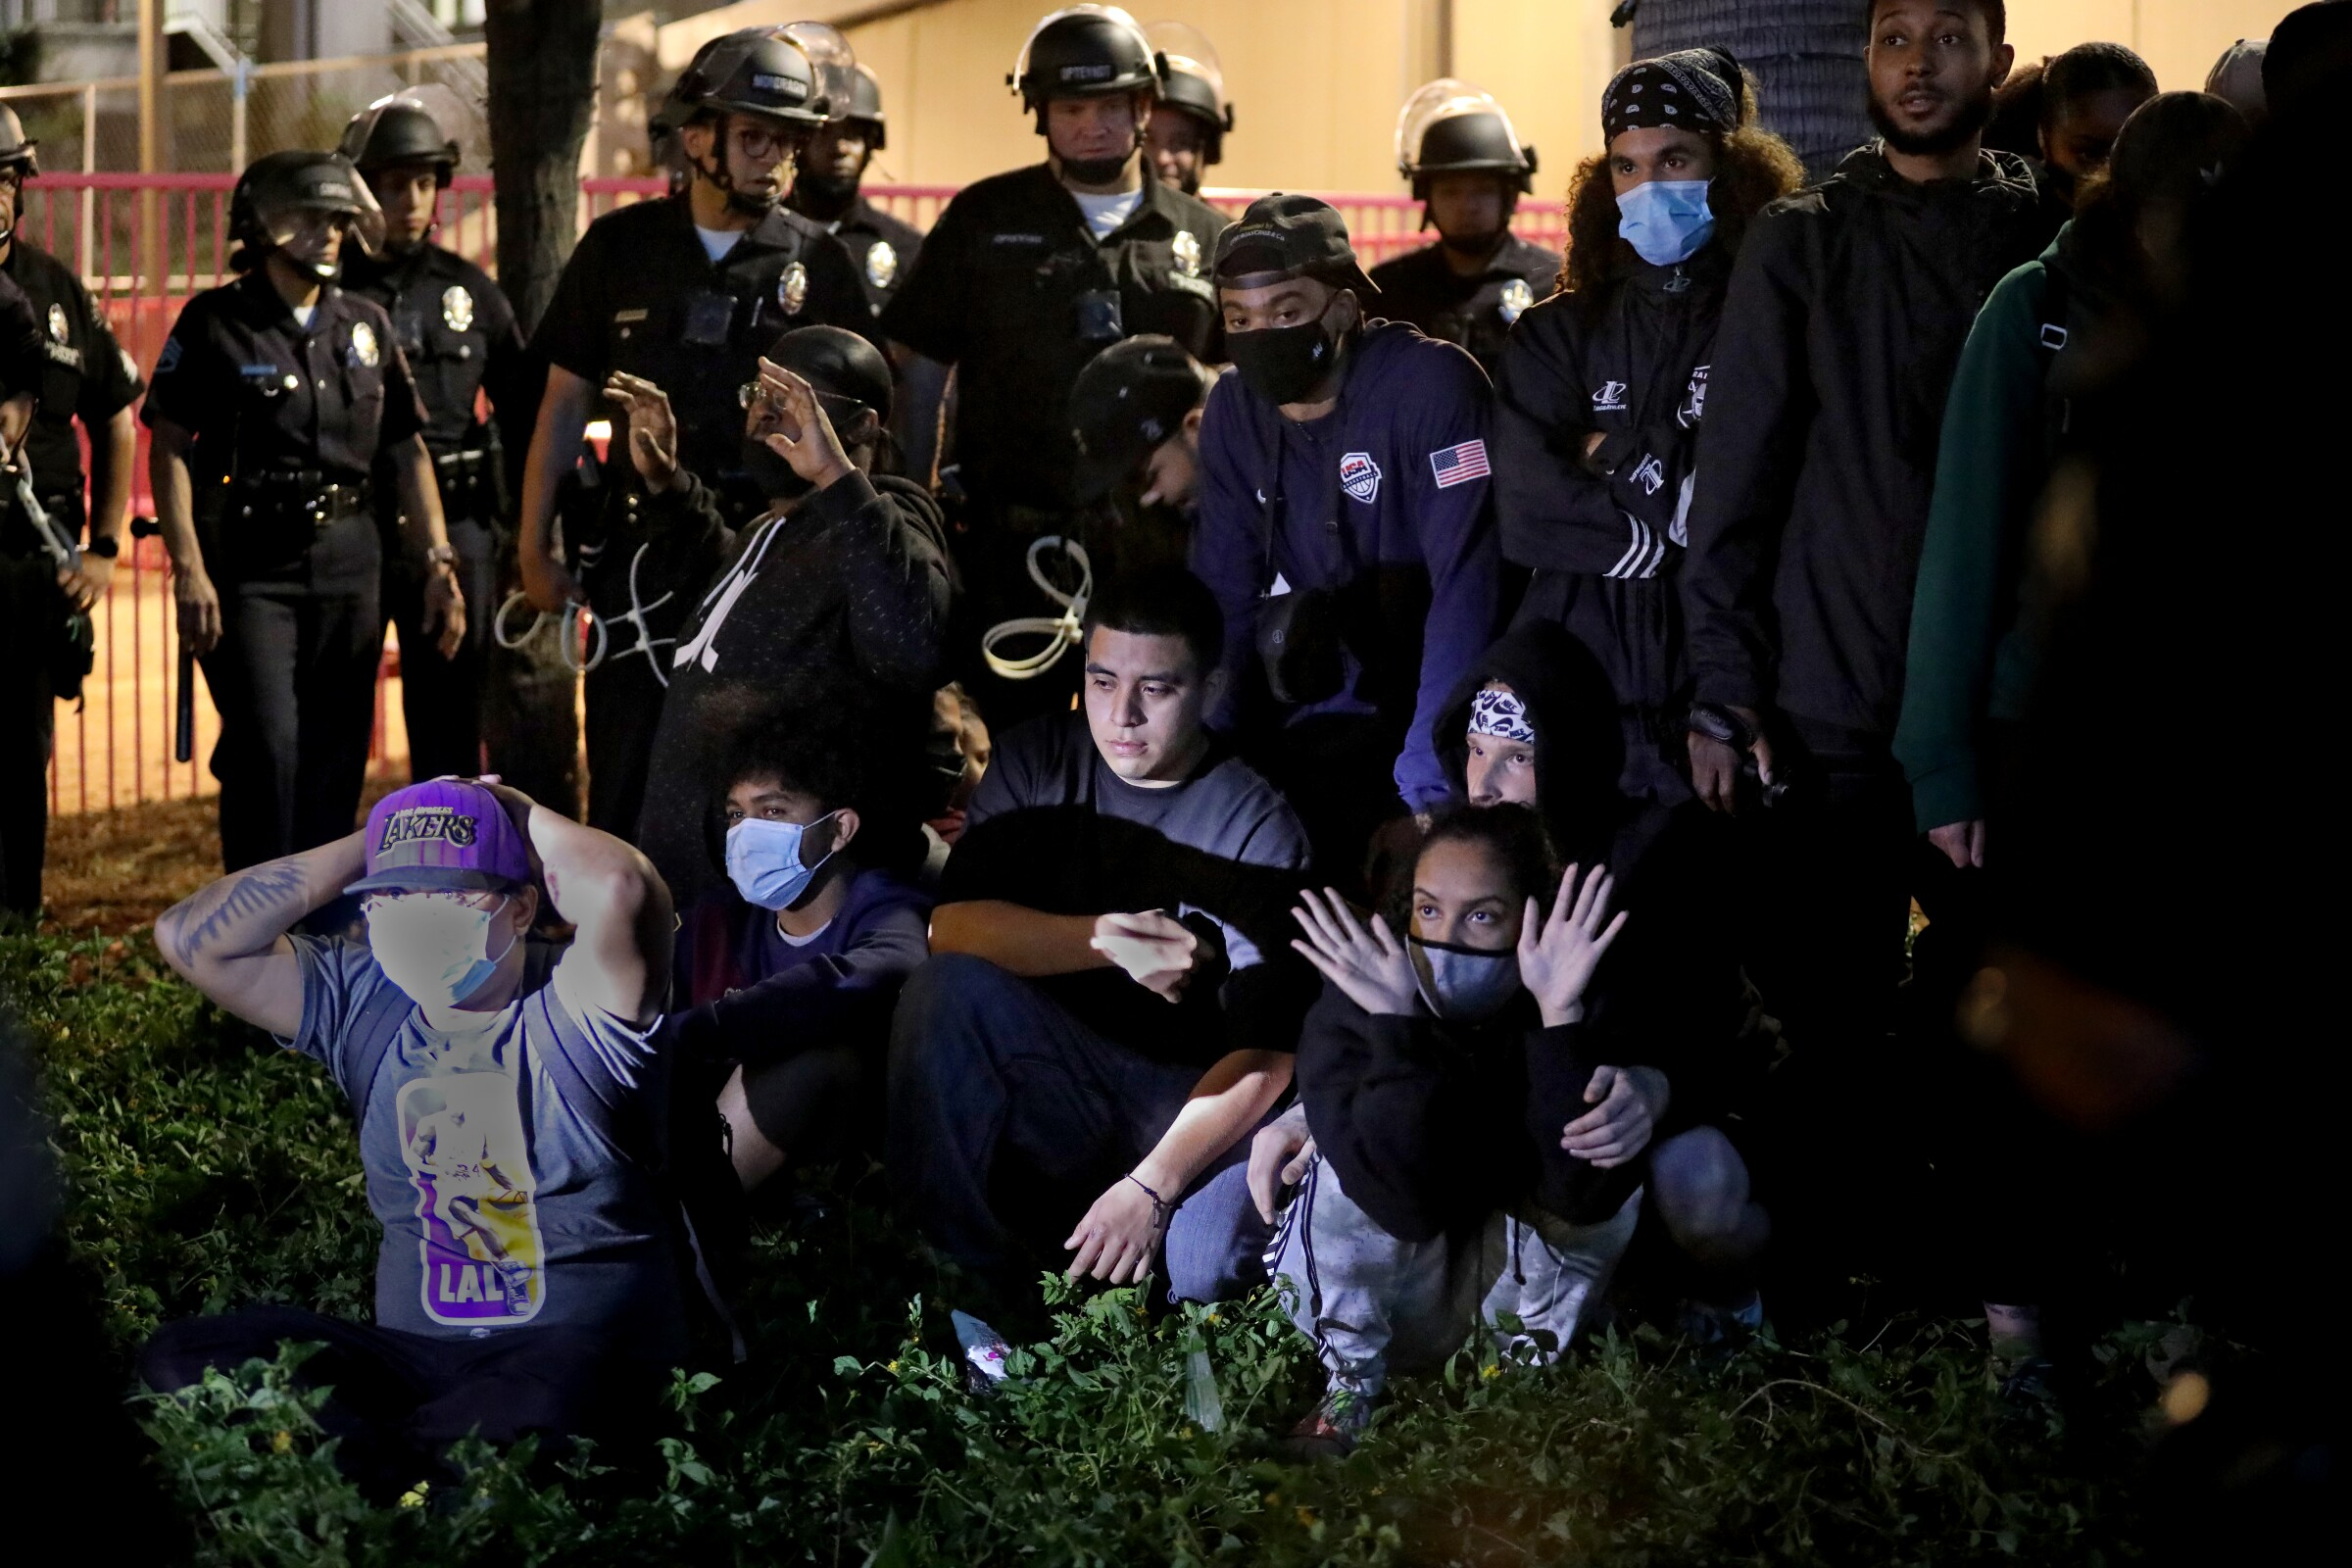 Police in helmets stand behind a group of arrestees who are seated on the ground